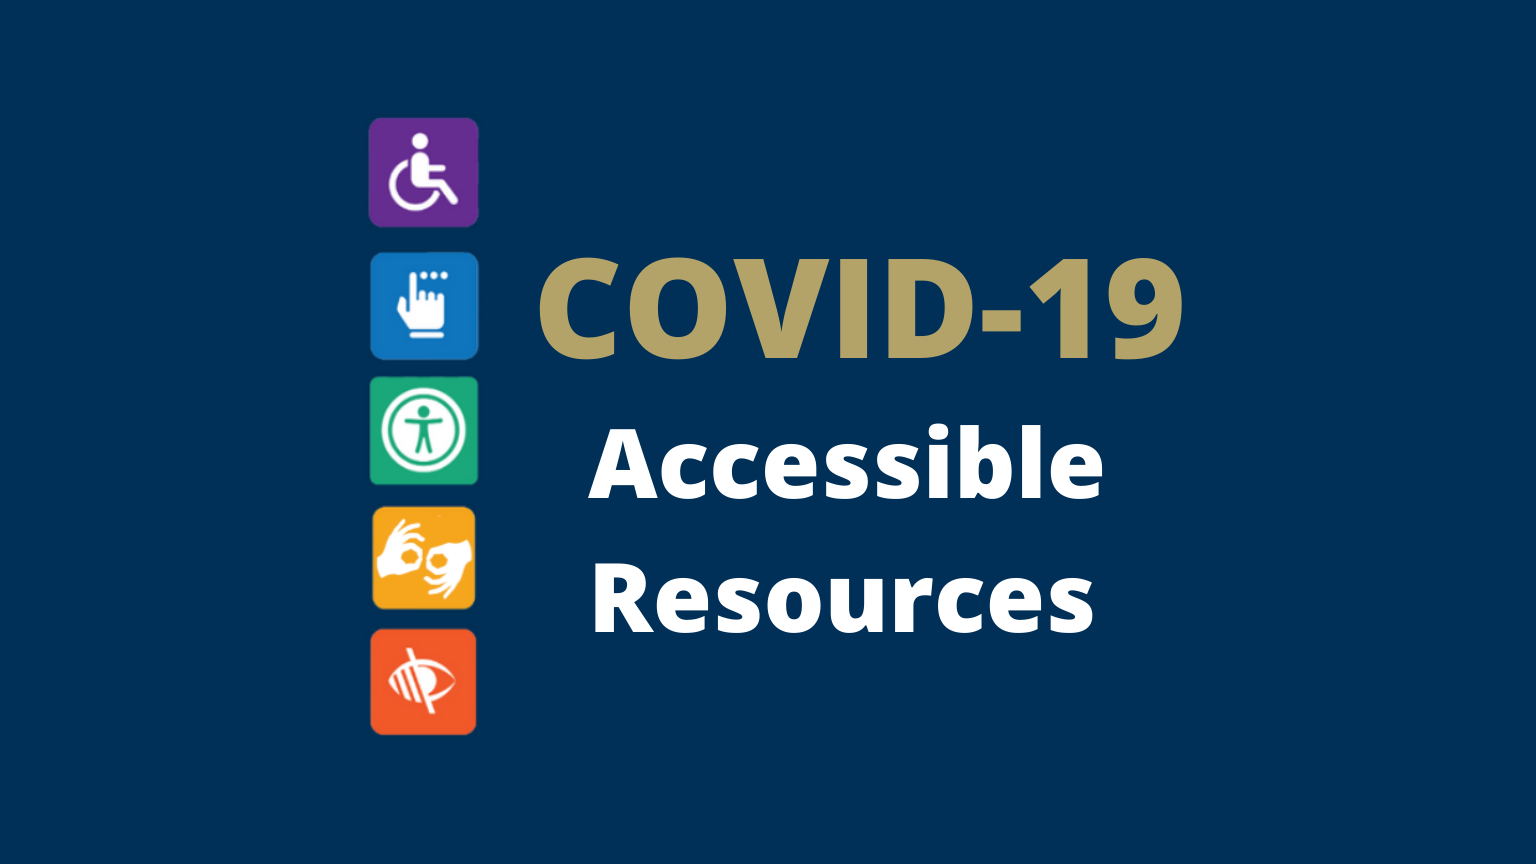 covid-19 accessible resources